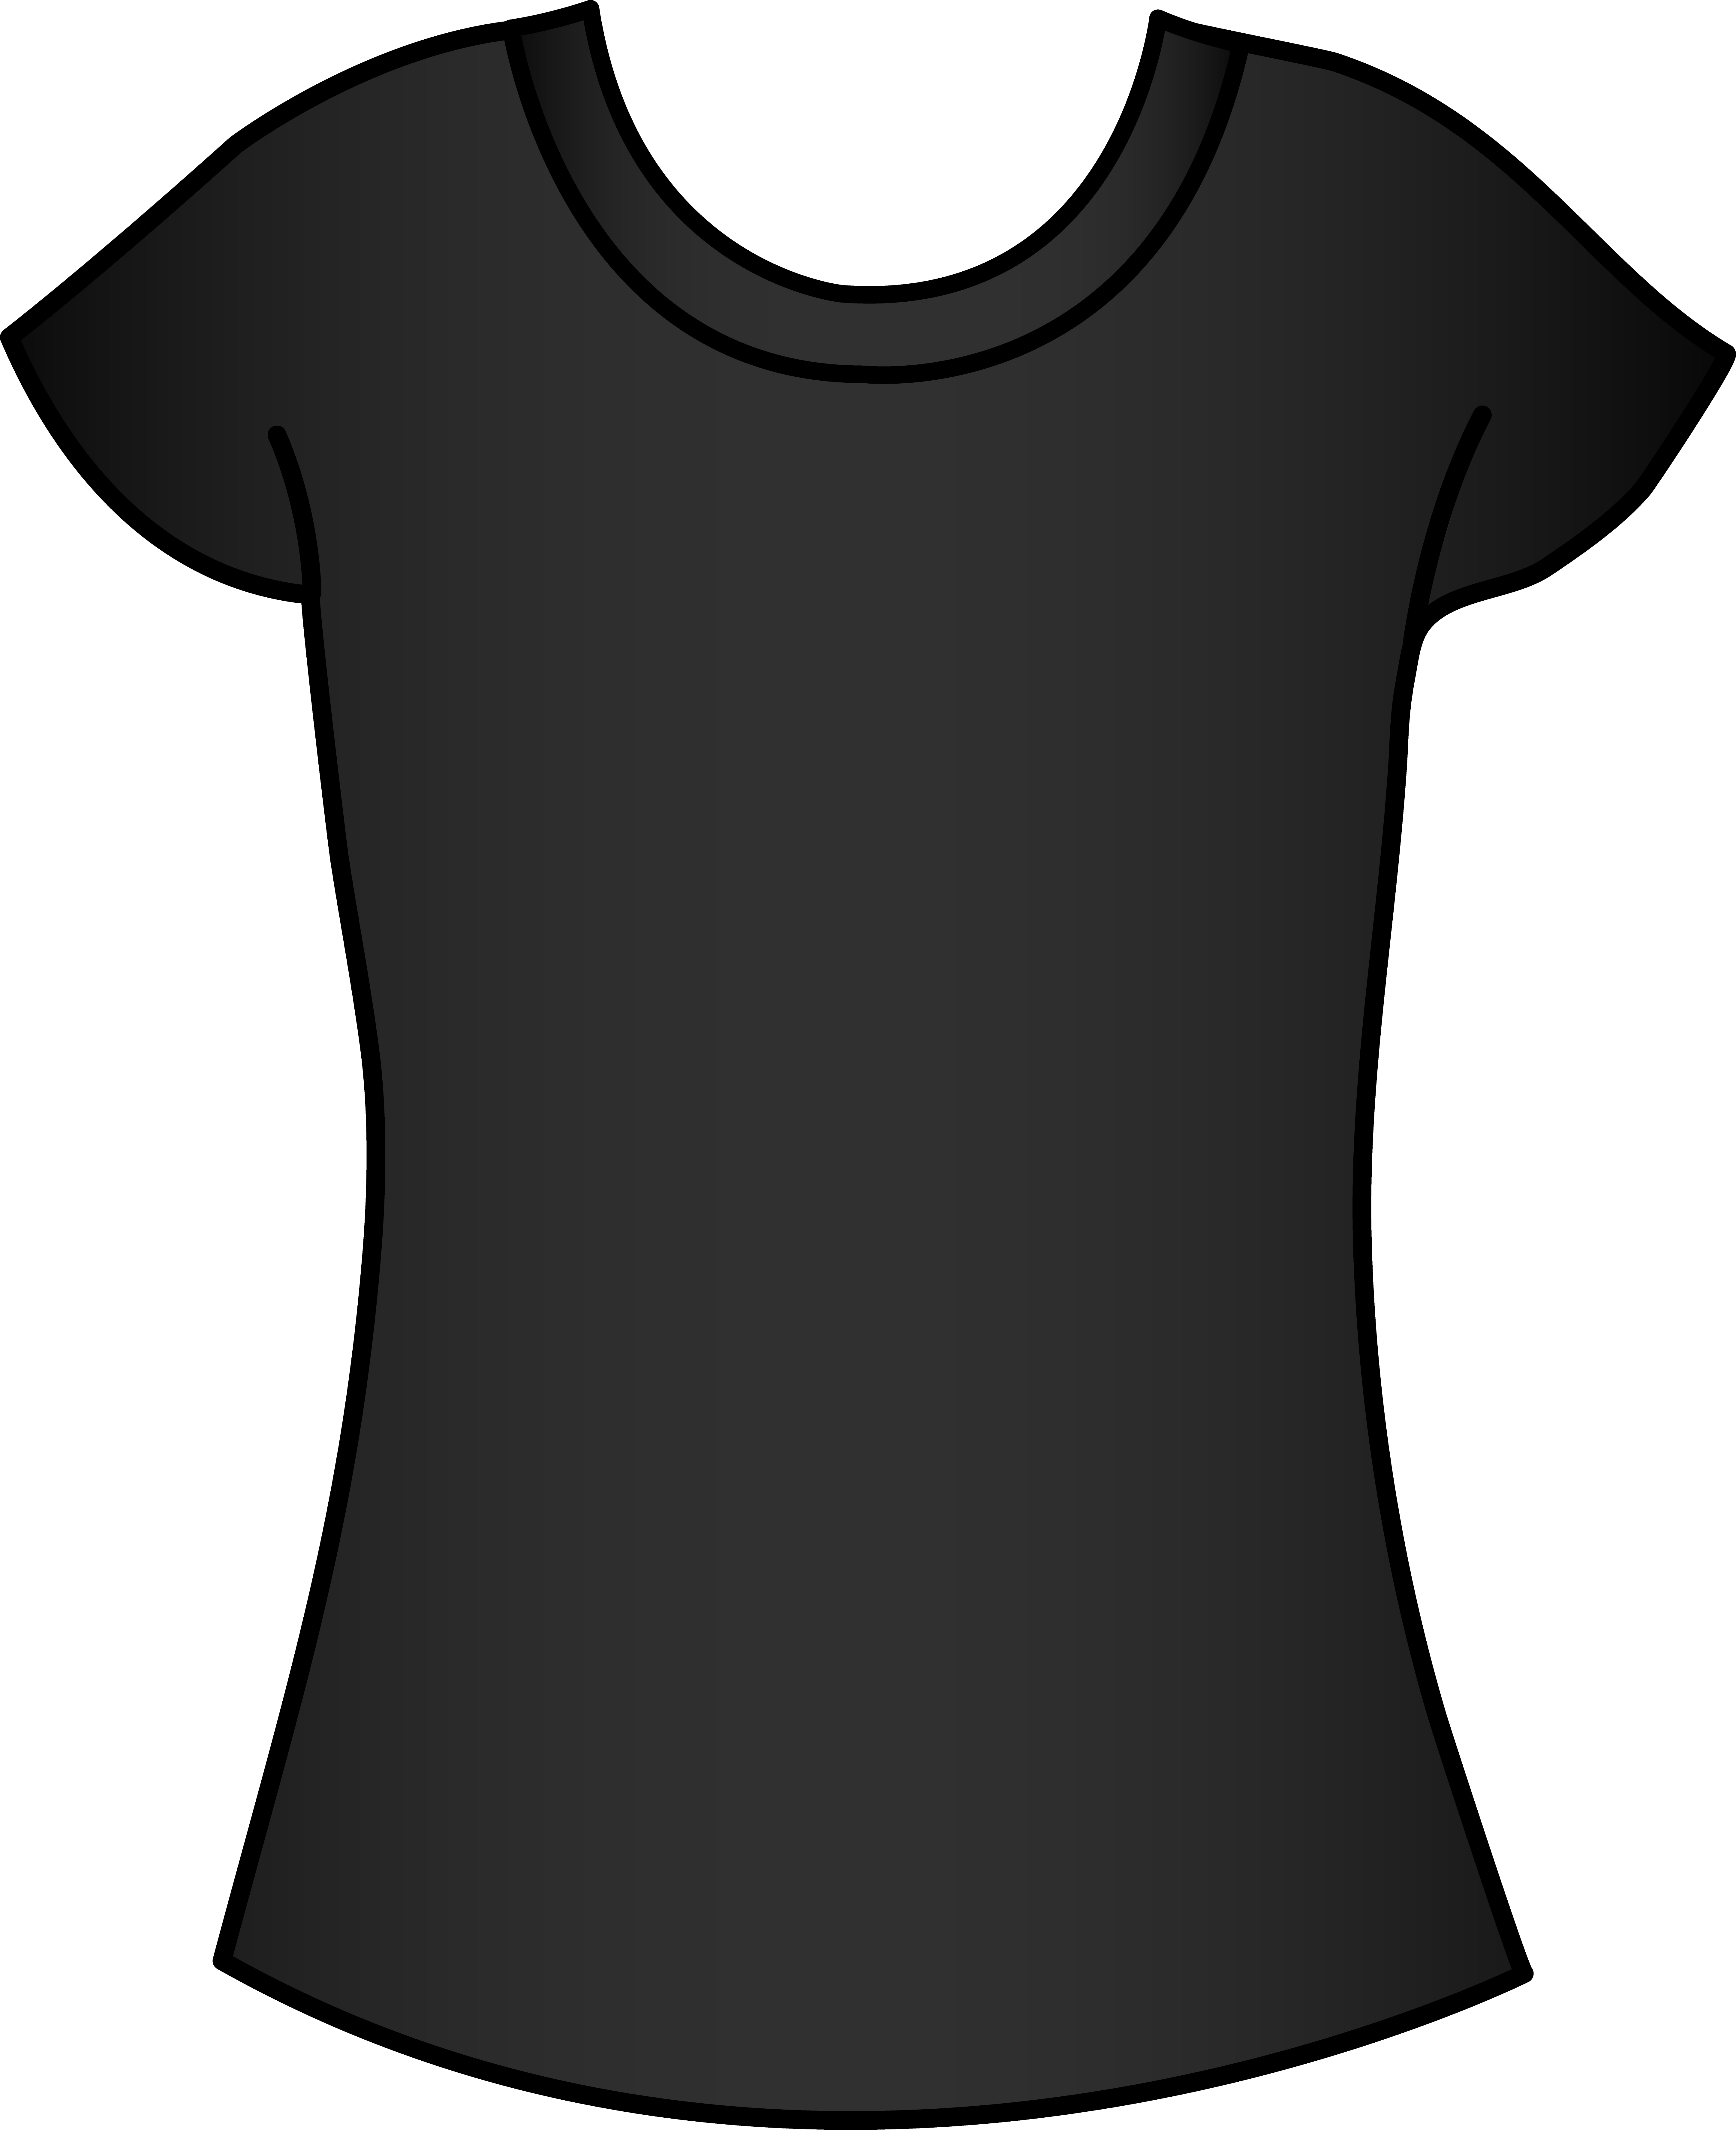 Womens t shirt clipart picture library stock Womens Black T Shirt Template - Free Clip Art picture library stock